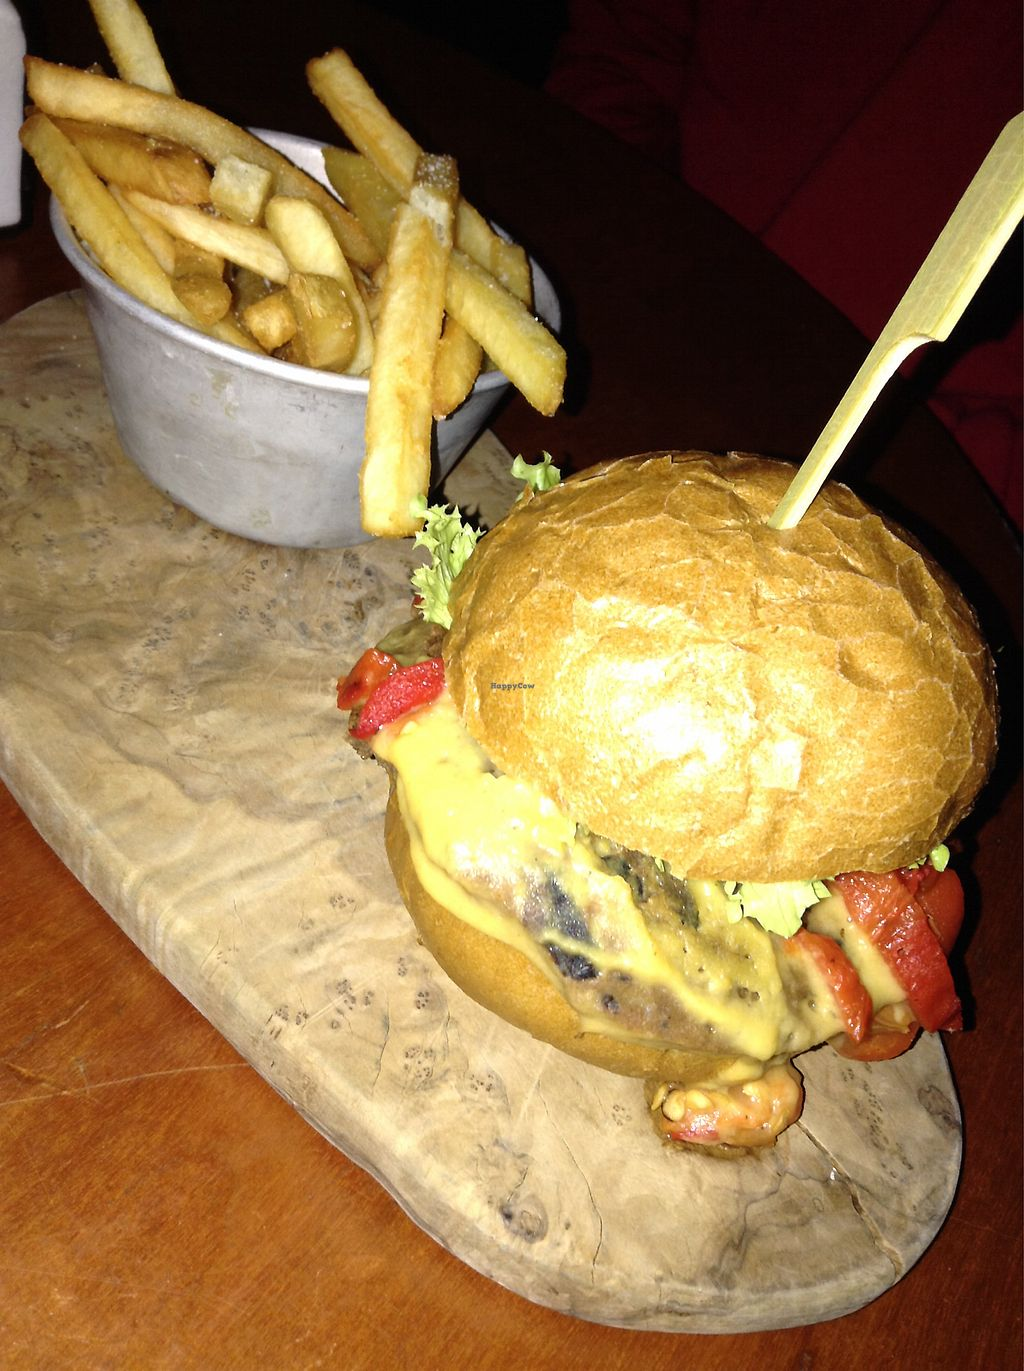 """Photo of The Deaf Institute Bar and Kitchen  by <a href=""""/members/profile/proudapples"""">proudapples</a> <br/>Seitan Burger  <br/> October 24, 2017  - <a href='/contact/abuse/image/76794/318351'>Report</a>"""